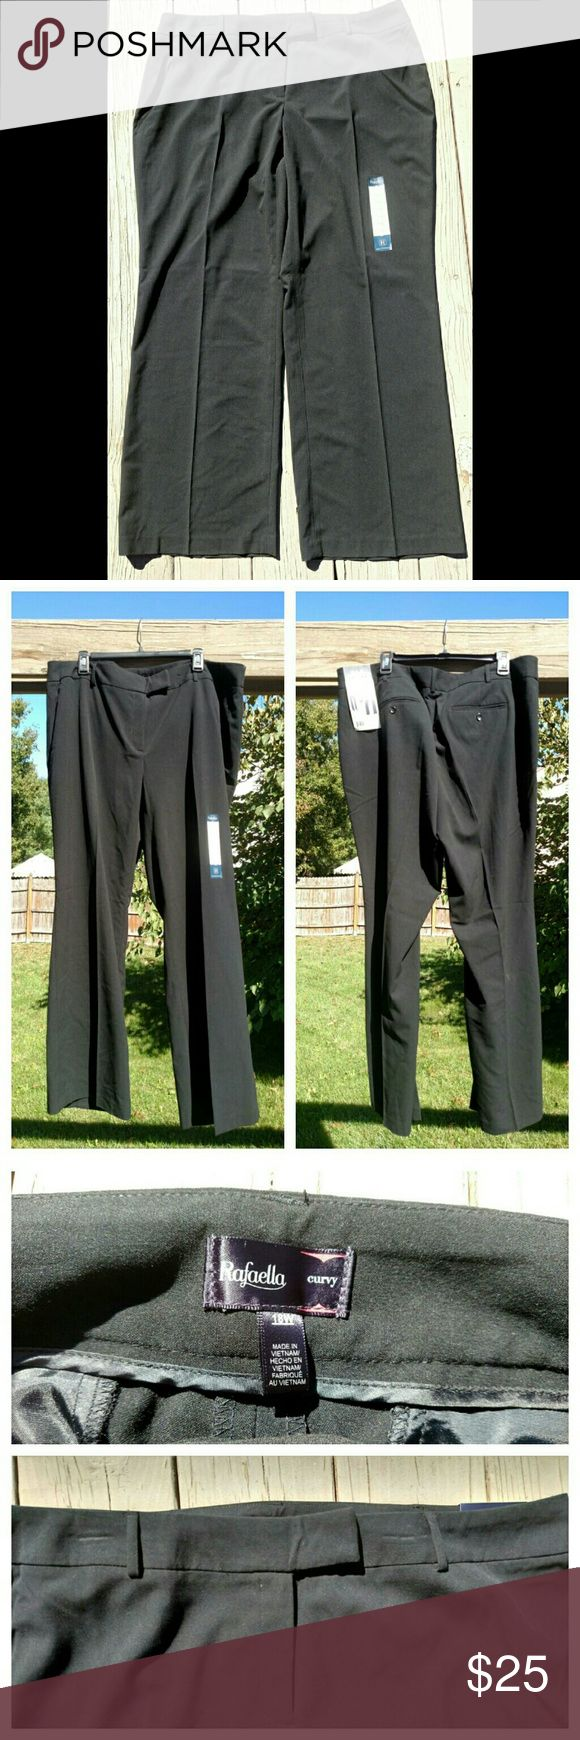 ➕Black Dress Pants➕ Black dress pants from Rafaella! NWT, never worn. Size 18W. These pants are Curvy Fit for the needs of a plus size queen! The legs are pleated down the front for a crisp, trouser feel. Button and hook closure at the waist. Can be worn with a belt. Great pants! Rafaella Pants Trousers